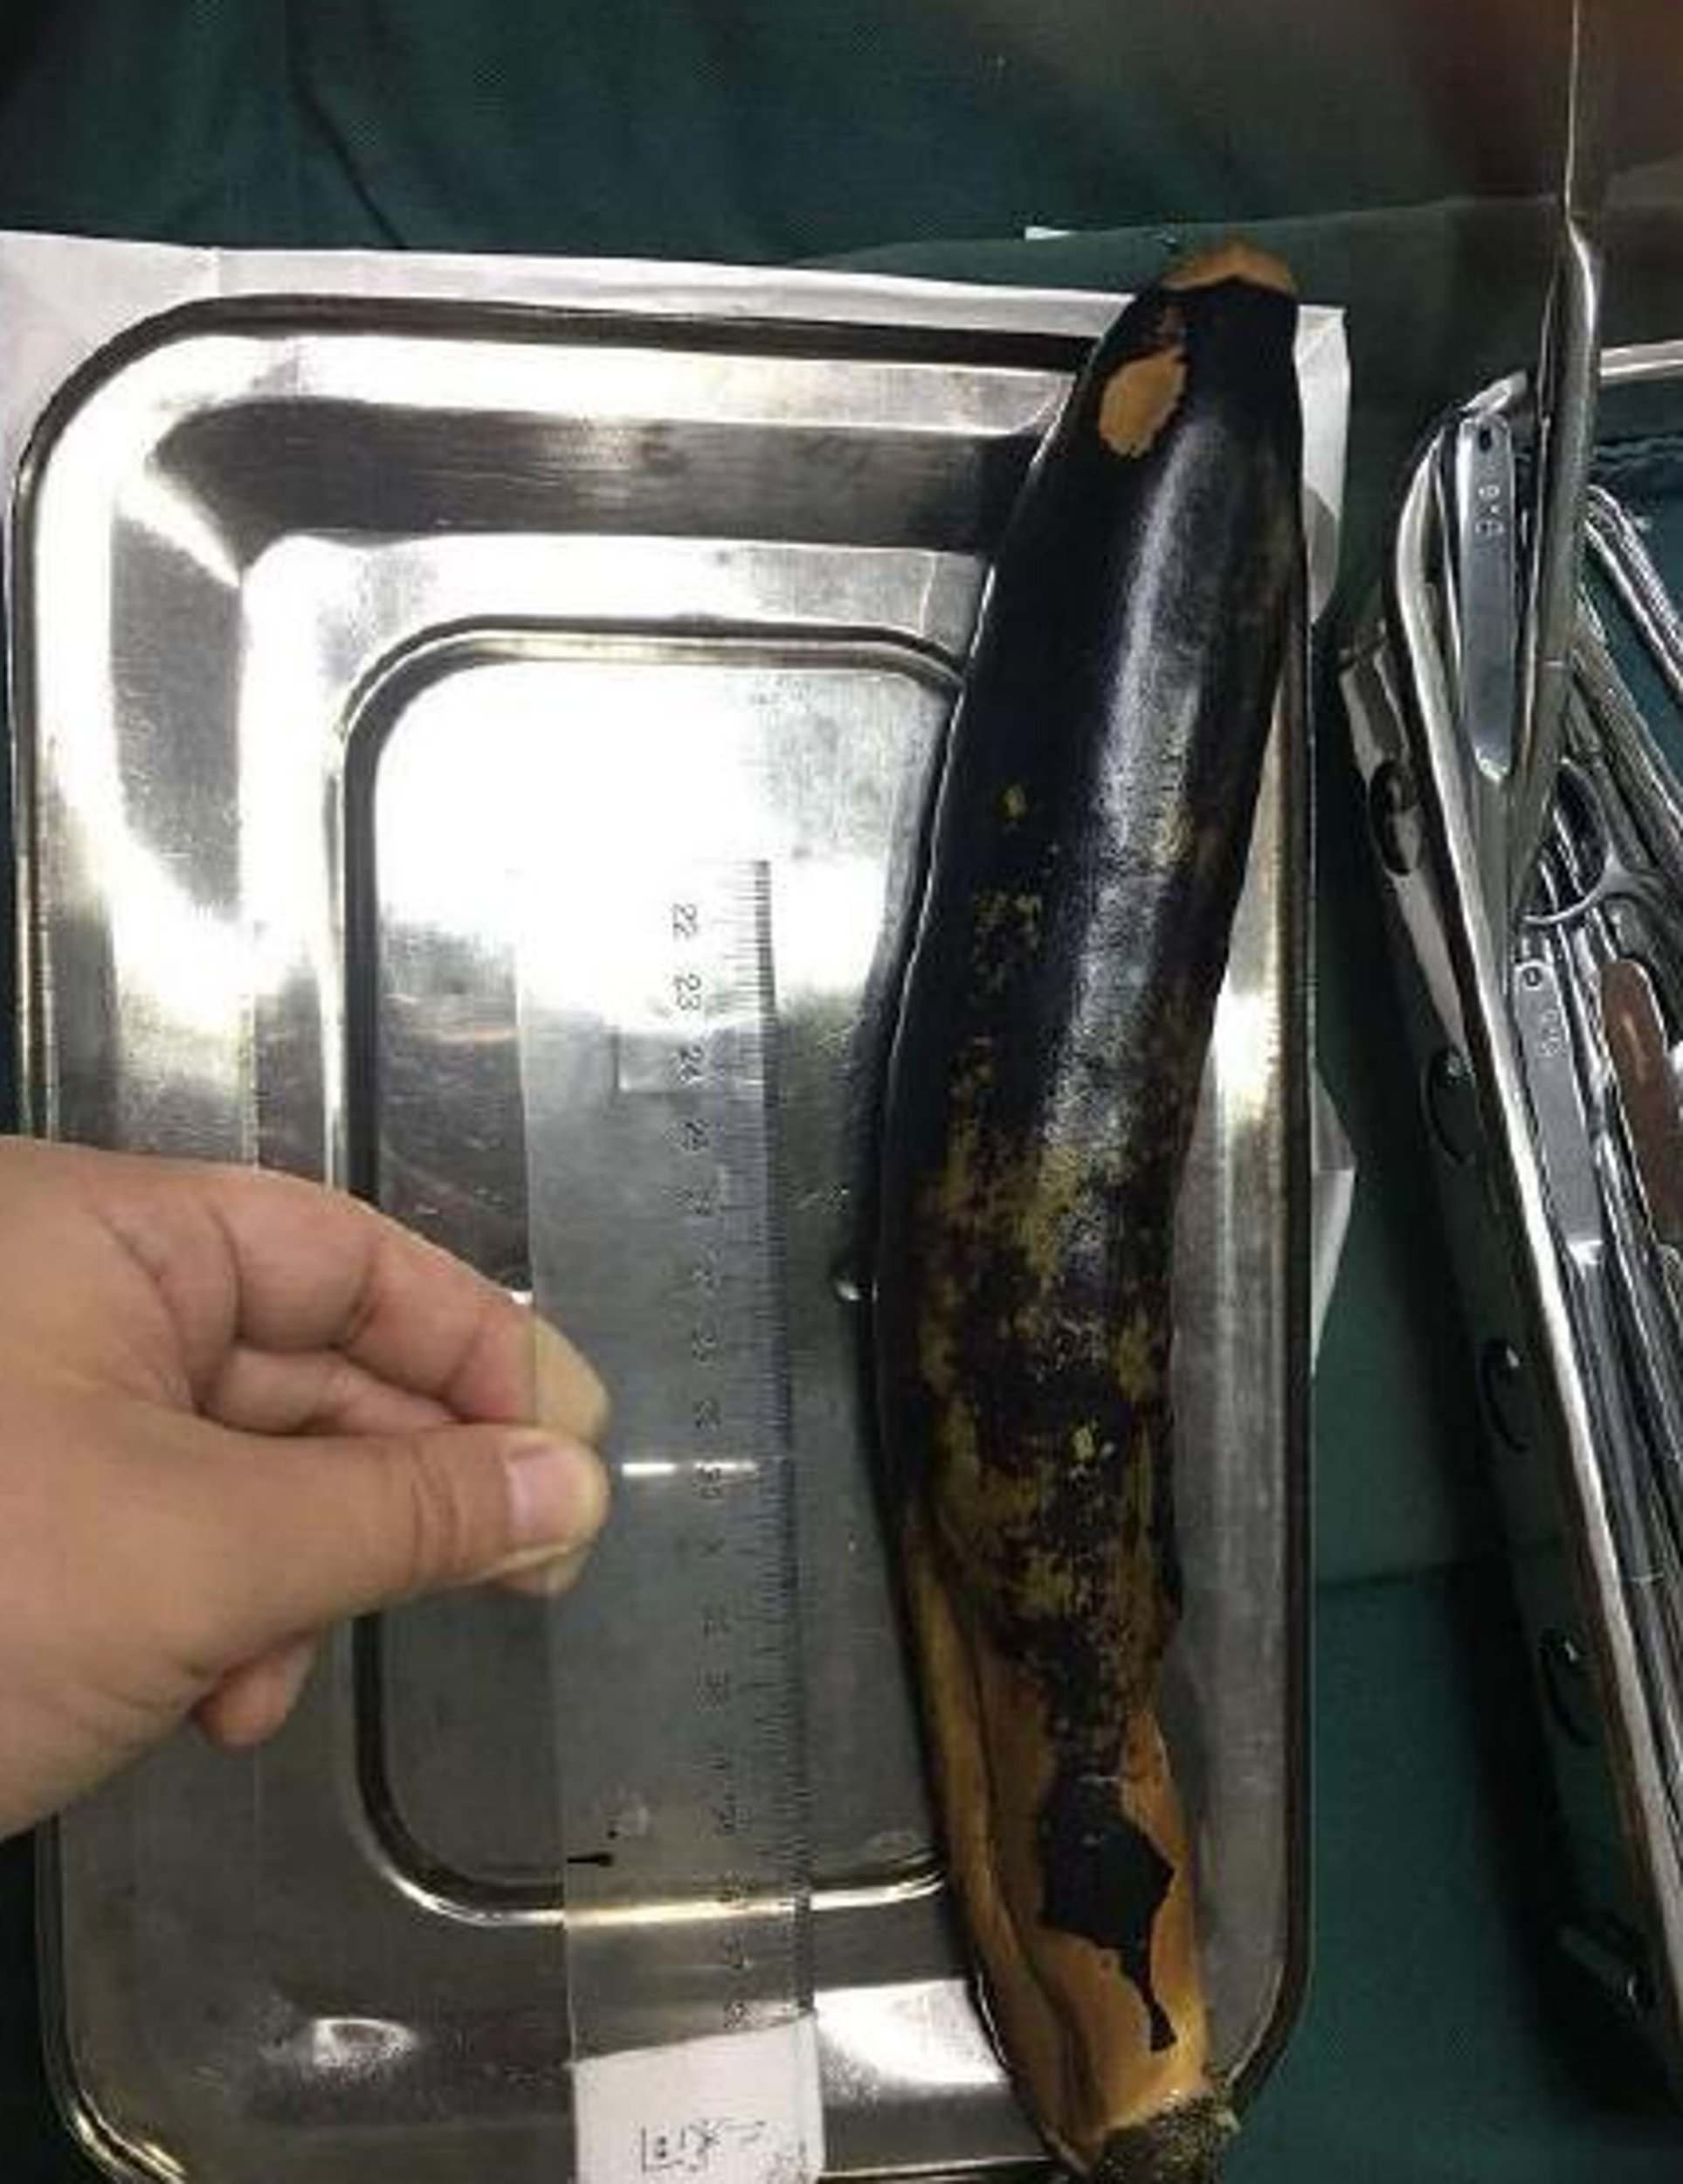 "Pic shows: The aubergine removed from the man's body Doctors in China have removed a foot-long aubergine from a man???s intestines after he shoved the fruit up his rectum in a desperate bid to cure for his constipation. According to reports, the unnamed 50-year-old man finally sought medical attention after leaving the 12-inch aubergine in his body for two days. The patient???s exact location in China has not been revealed, with reports saying he was treated on 30th May after his own DIY cure backfired. The man told doctors that he had been suffering from constipation and nausea for two days when he decided to insert the aubergine into his anus and up his rectum in a bid to expand his colon. He had hoped this folk remedy would help ease his pain, but the smooth, long fruit was inserted far too deep and ended up being sucked into his body. Scans showed it having travelled up his large intestine and lodged itself at an angle in his abdomen. Incredibly, he suffered through two more days of abdominal pain, nausea and vomiting before finally seeking help. Medics treating the man retrieved the aubergine whole, saying that the fruit was so far up his body that it caused lung inflammation and a ruptured bowel. It is unclear, however, whether his constipation symptoms were relieved. Social media users on Weibo have left more than 12,000 comments and 11,000 likes on reports of the unbelievable case. ???Luce Lushisuo Wang Chengyan??? wrote: ""Now stick some potatoes and green peppers up there and you???ll get ???di san xian???"" - referring to the Chinese dish which translates as ???treasures of the earth???."